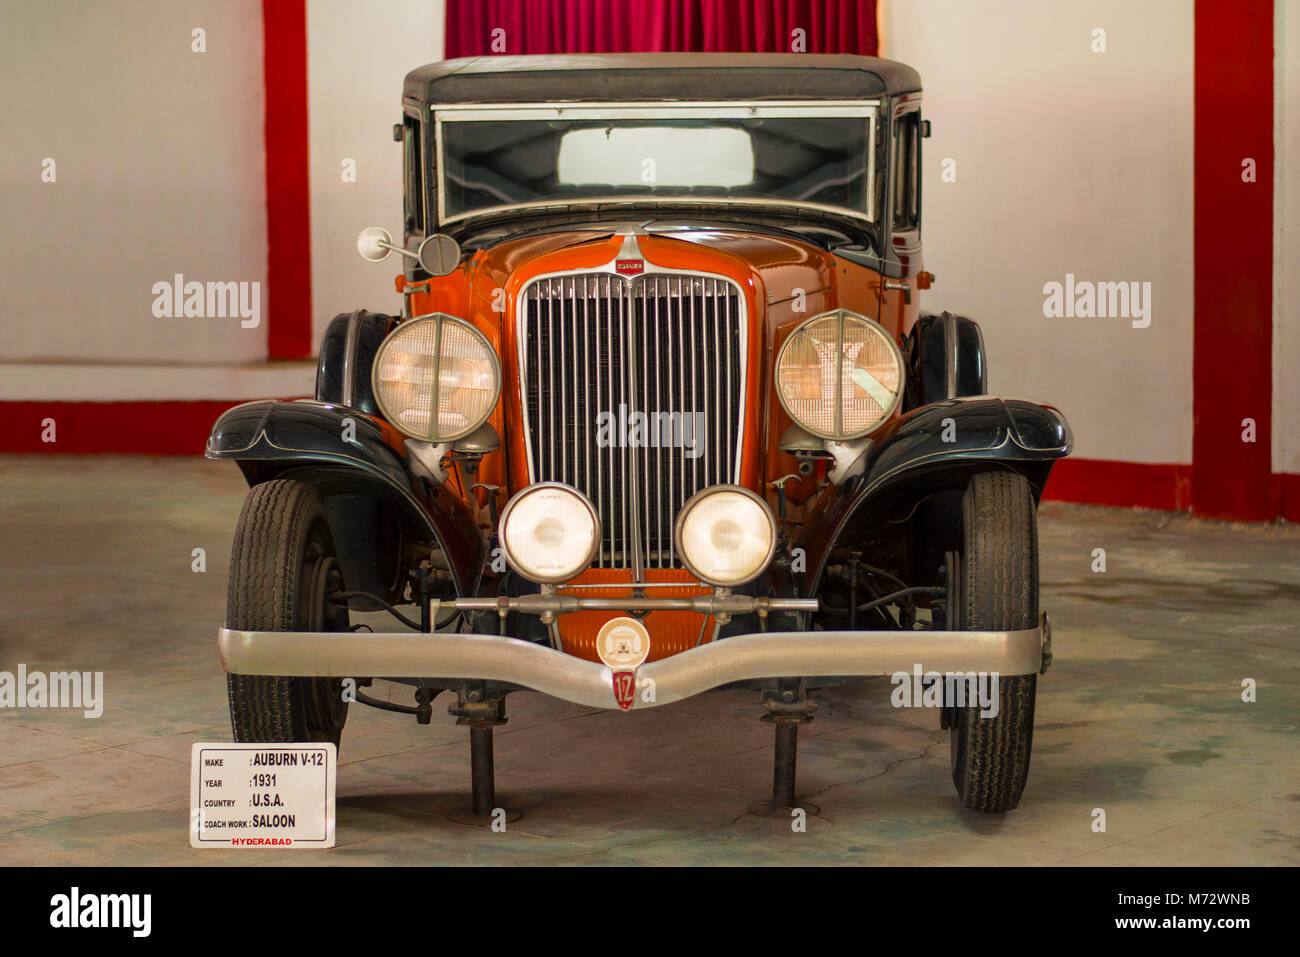 Auburn brown colored vintage car in Auto World Vintage Car Museum of ...